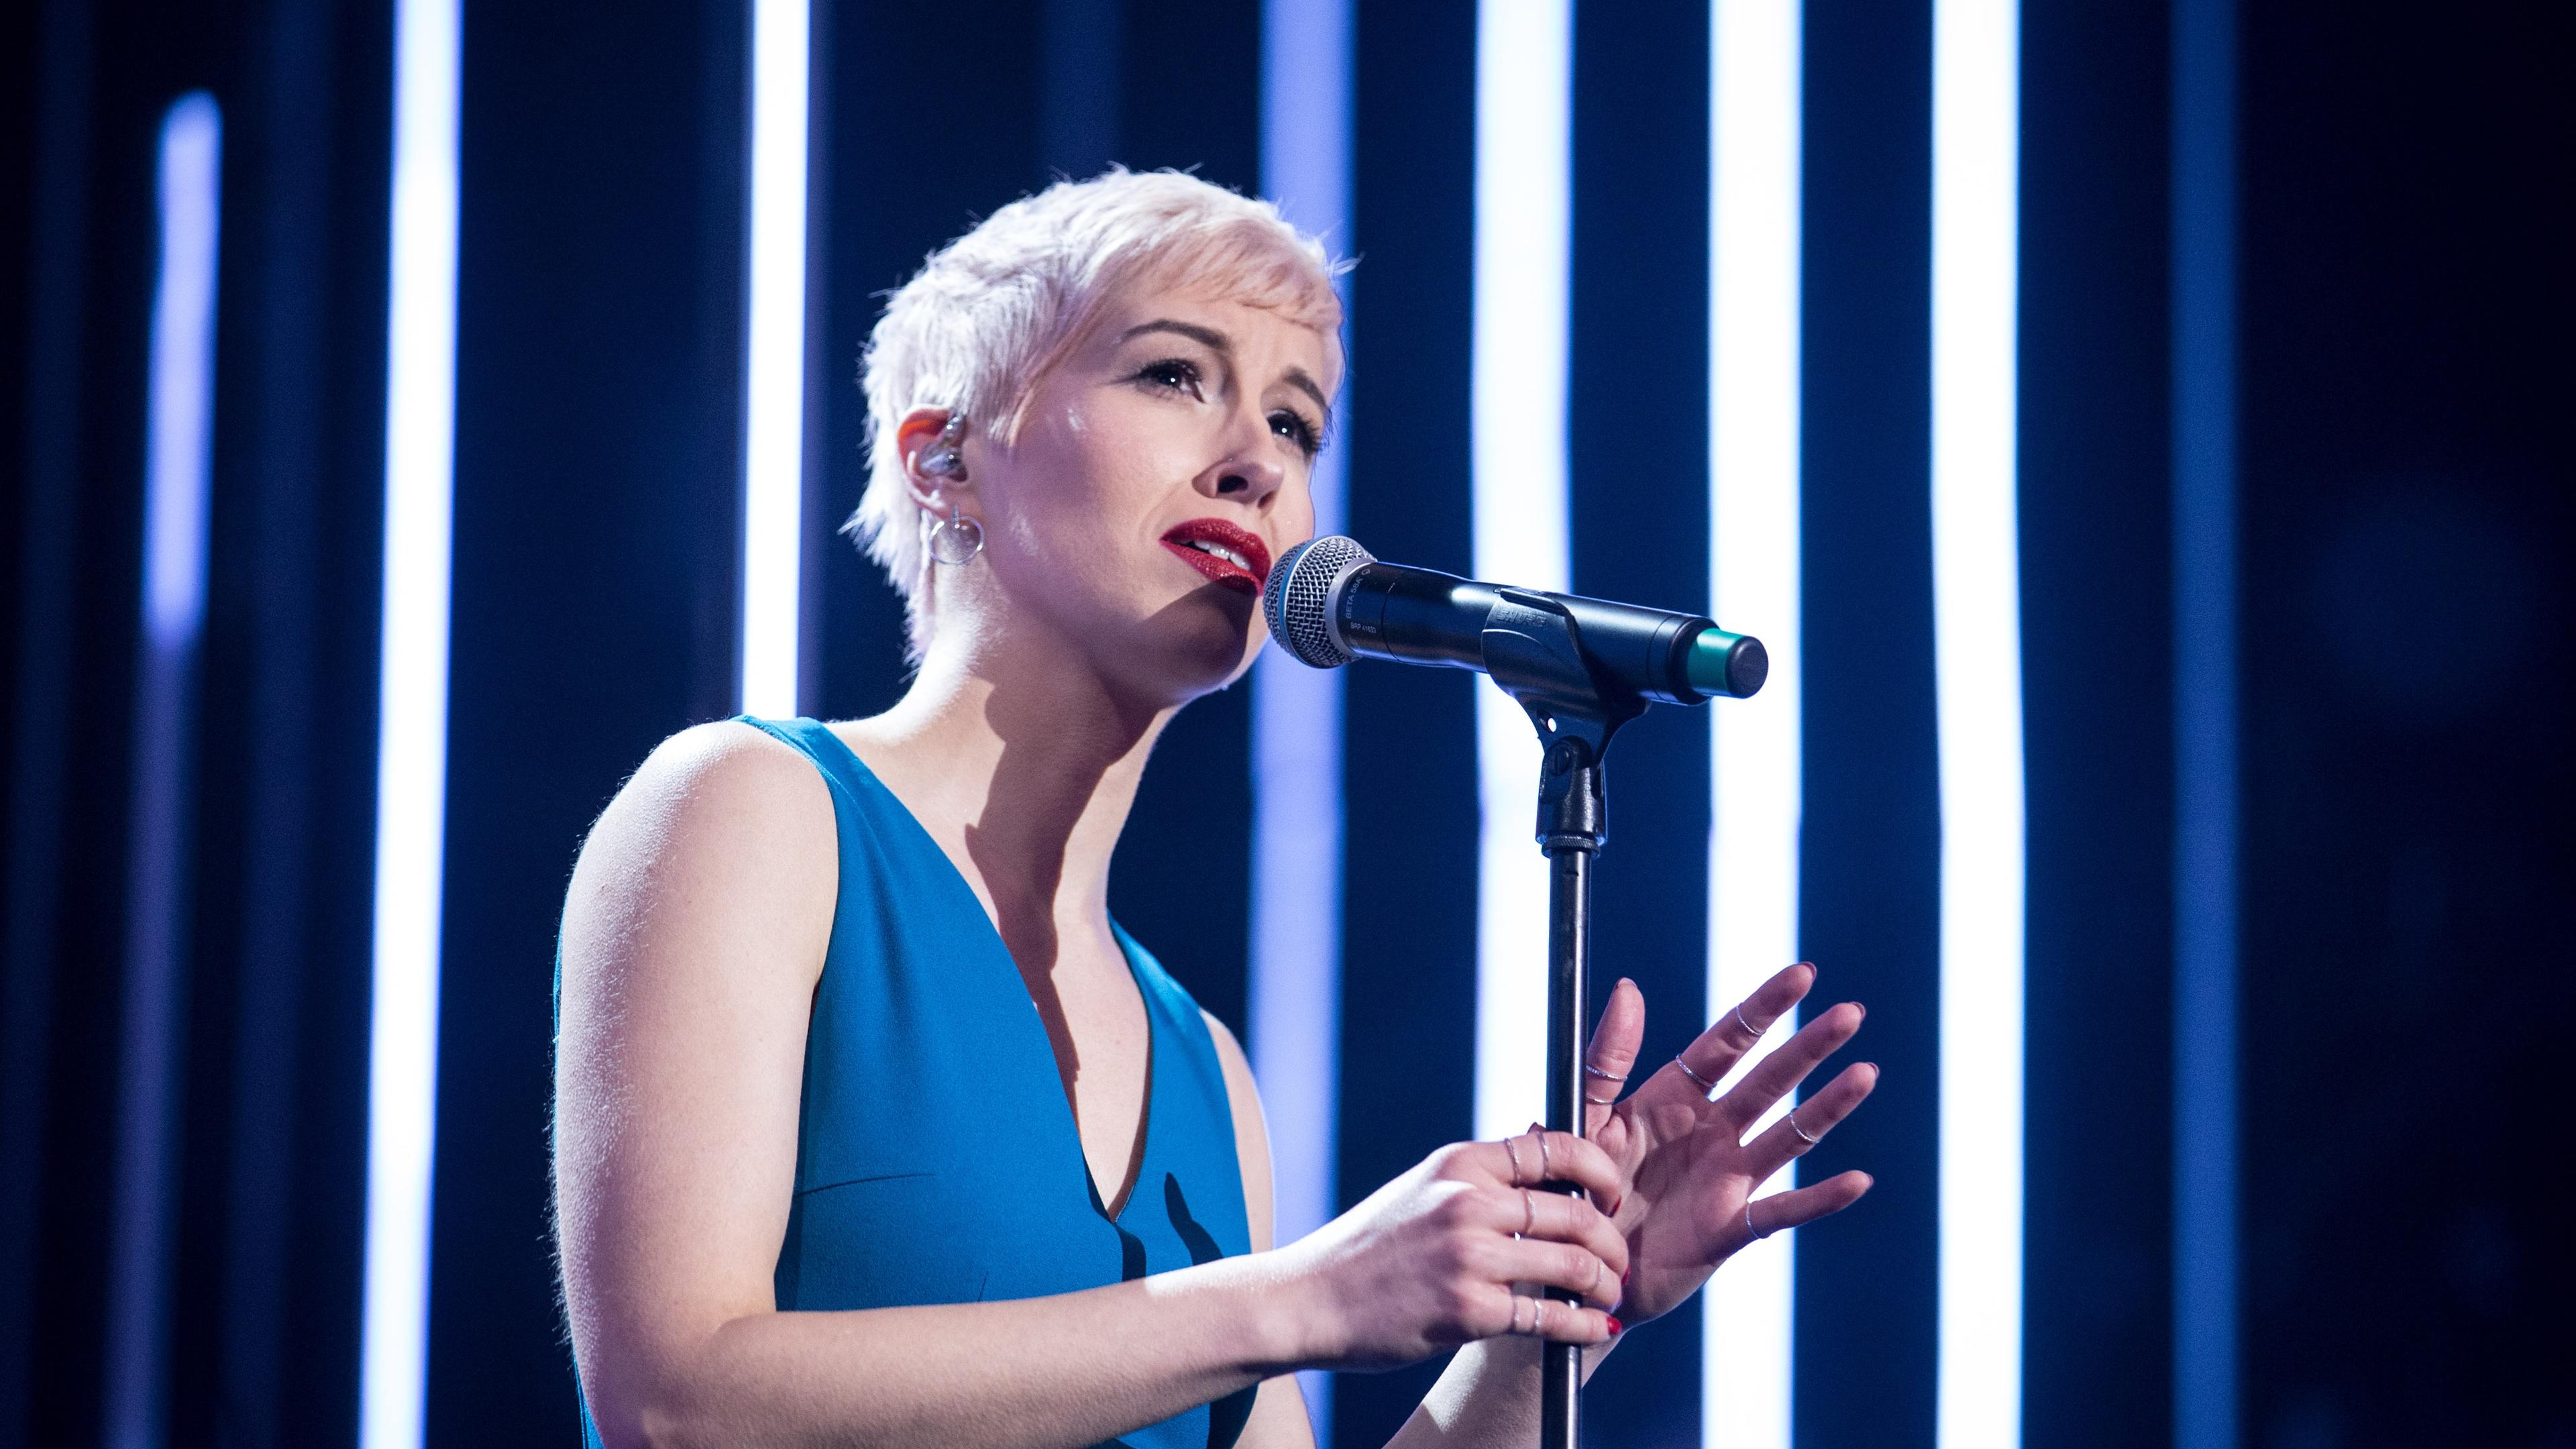 The UK's 2018 Eurovision entry SuRie